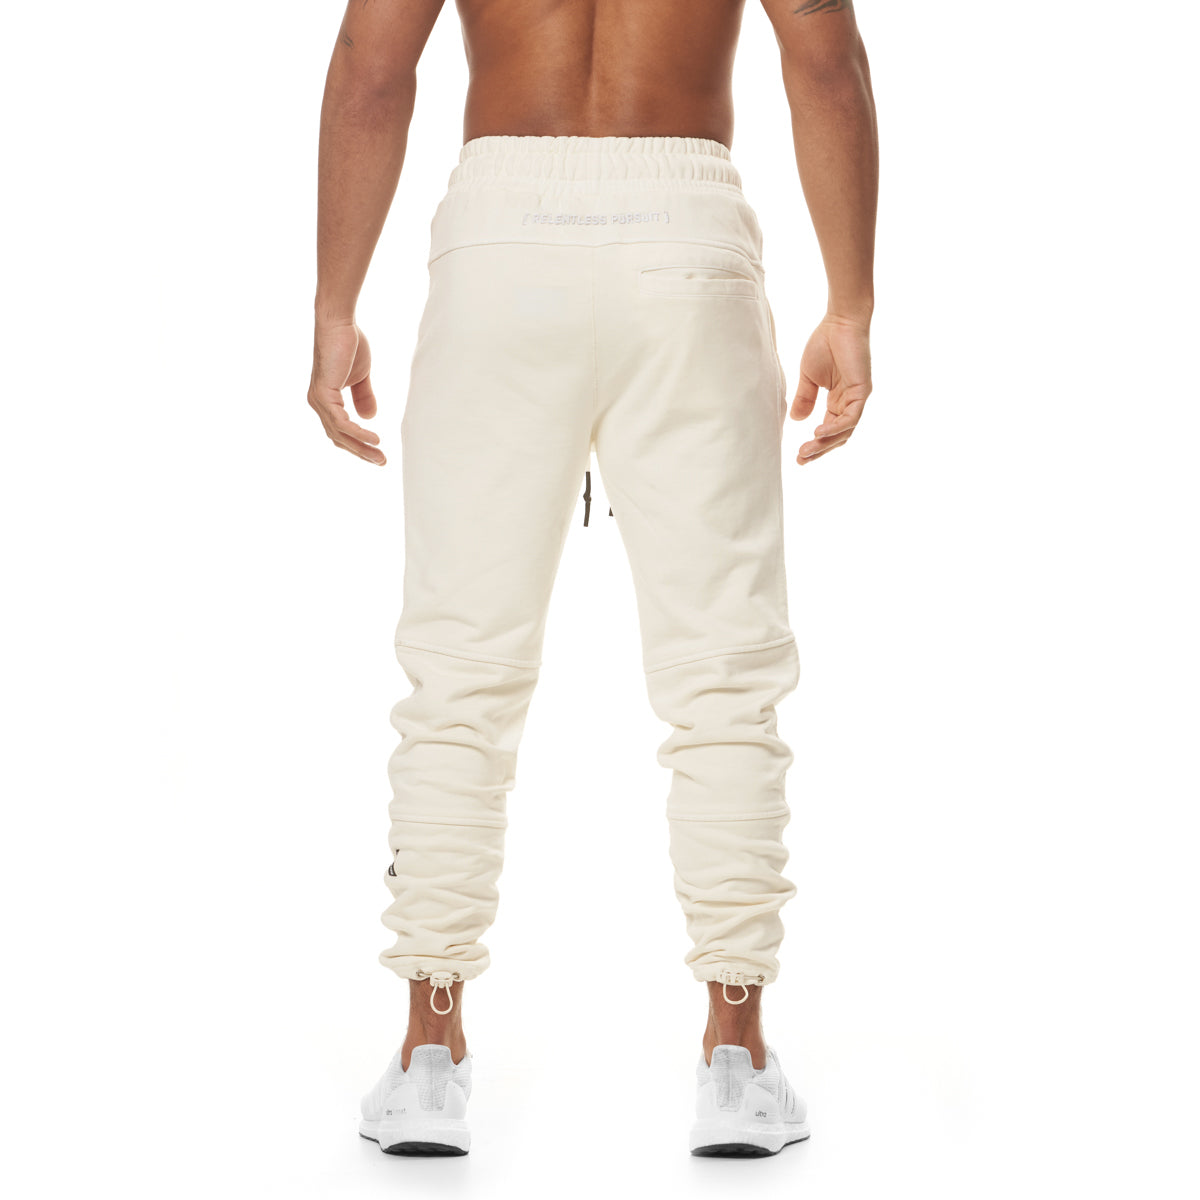 0266. Garment-Dyed French Terry Relaxed Jogger - Ivory Cream